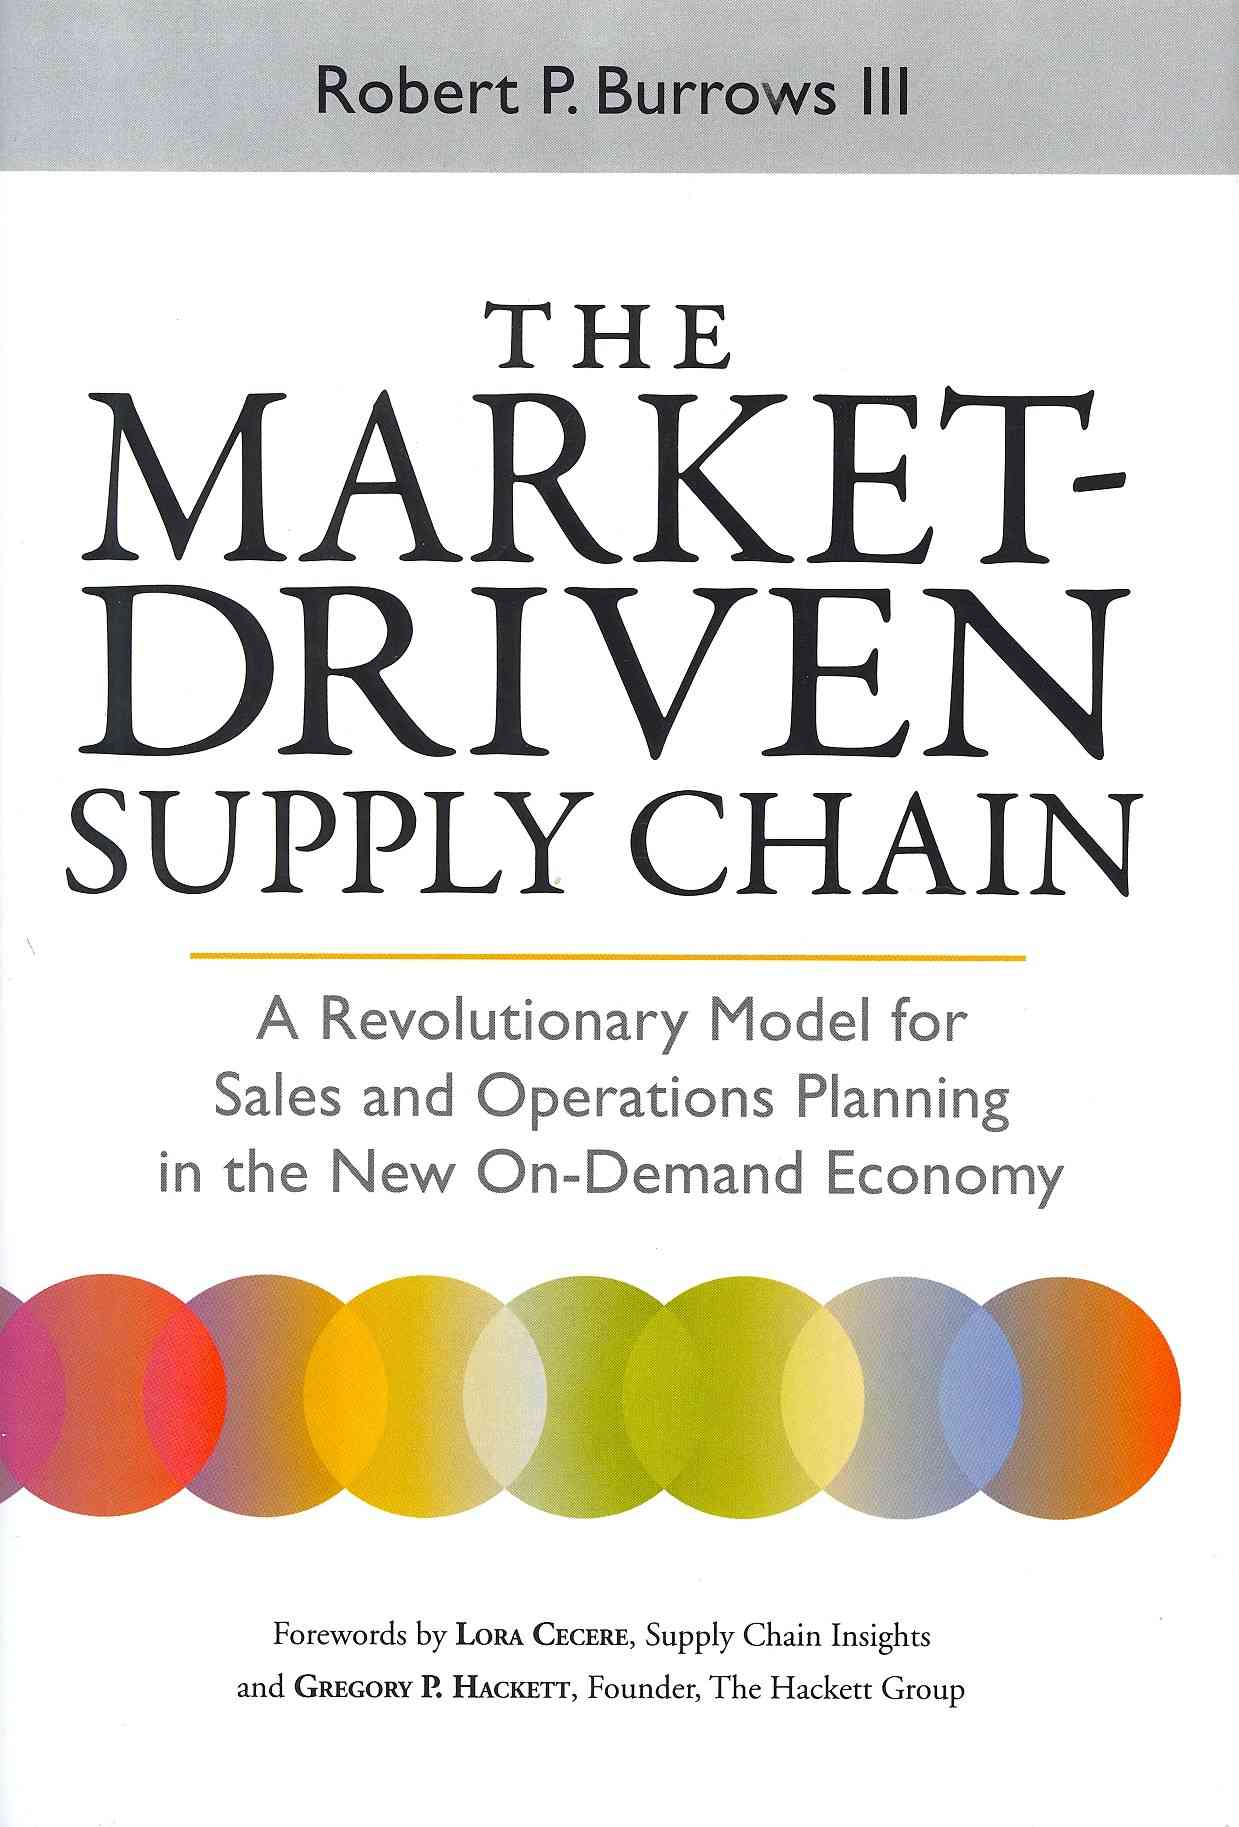 The Market-Driven Supply Chain By Burrows, Robert P., III/ Cecere, Lora (FRW)/ Hackett, Gregory P. (FRW)